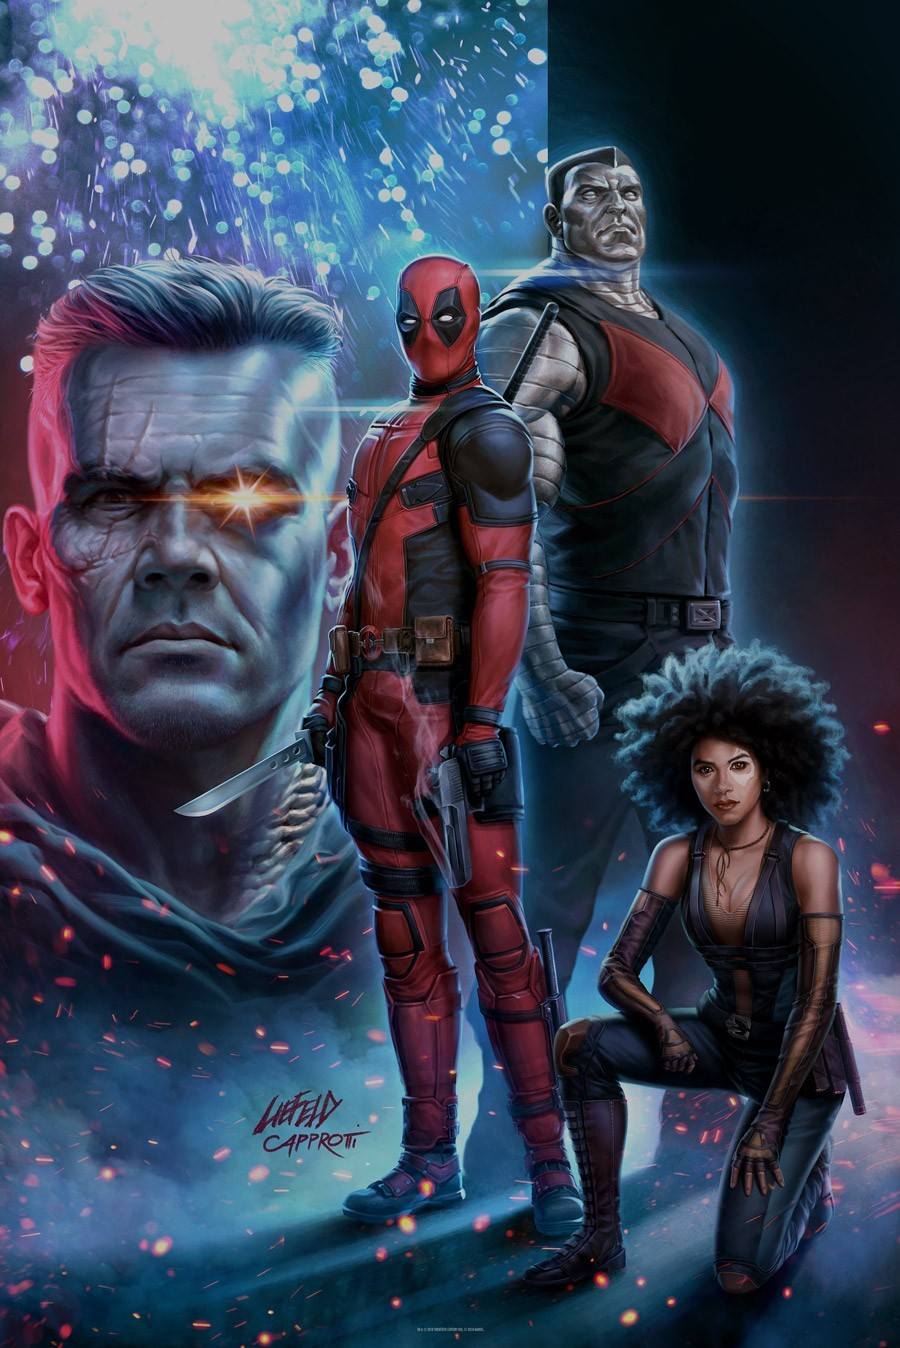 new-deadpool-2-poster-art-released-by-artist-rob-liefeld-and-dolby-cinema1